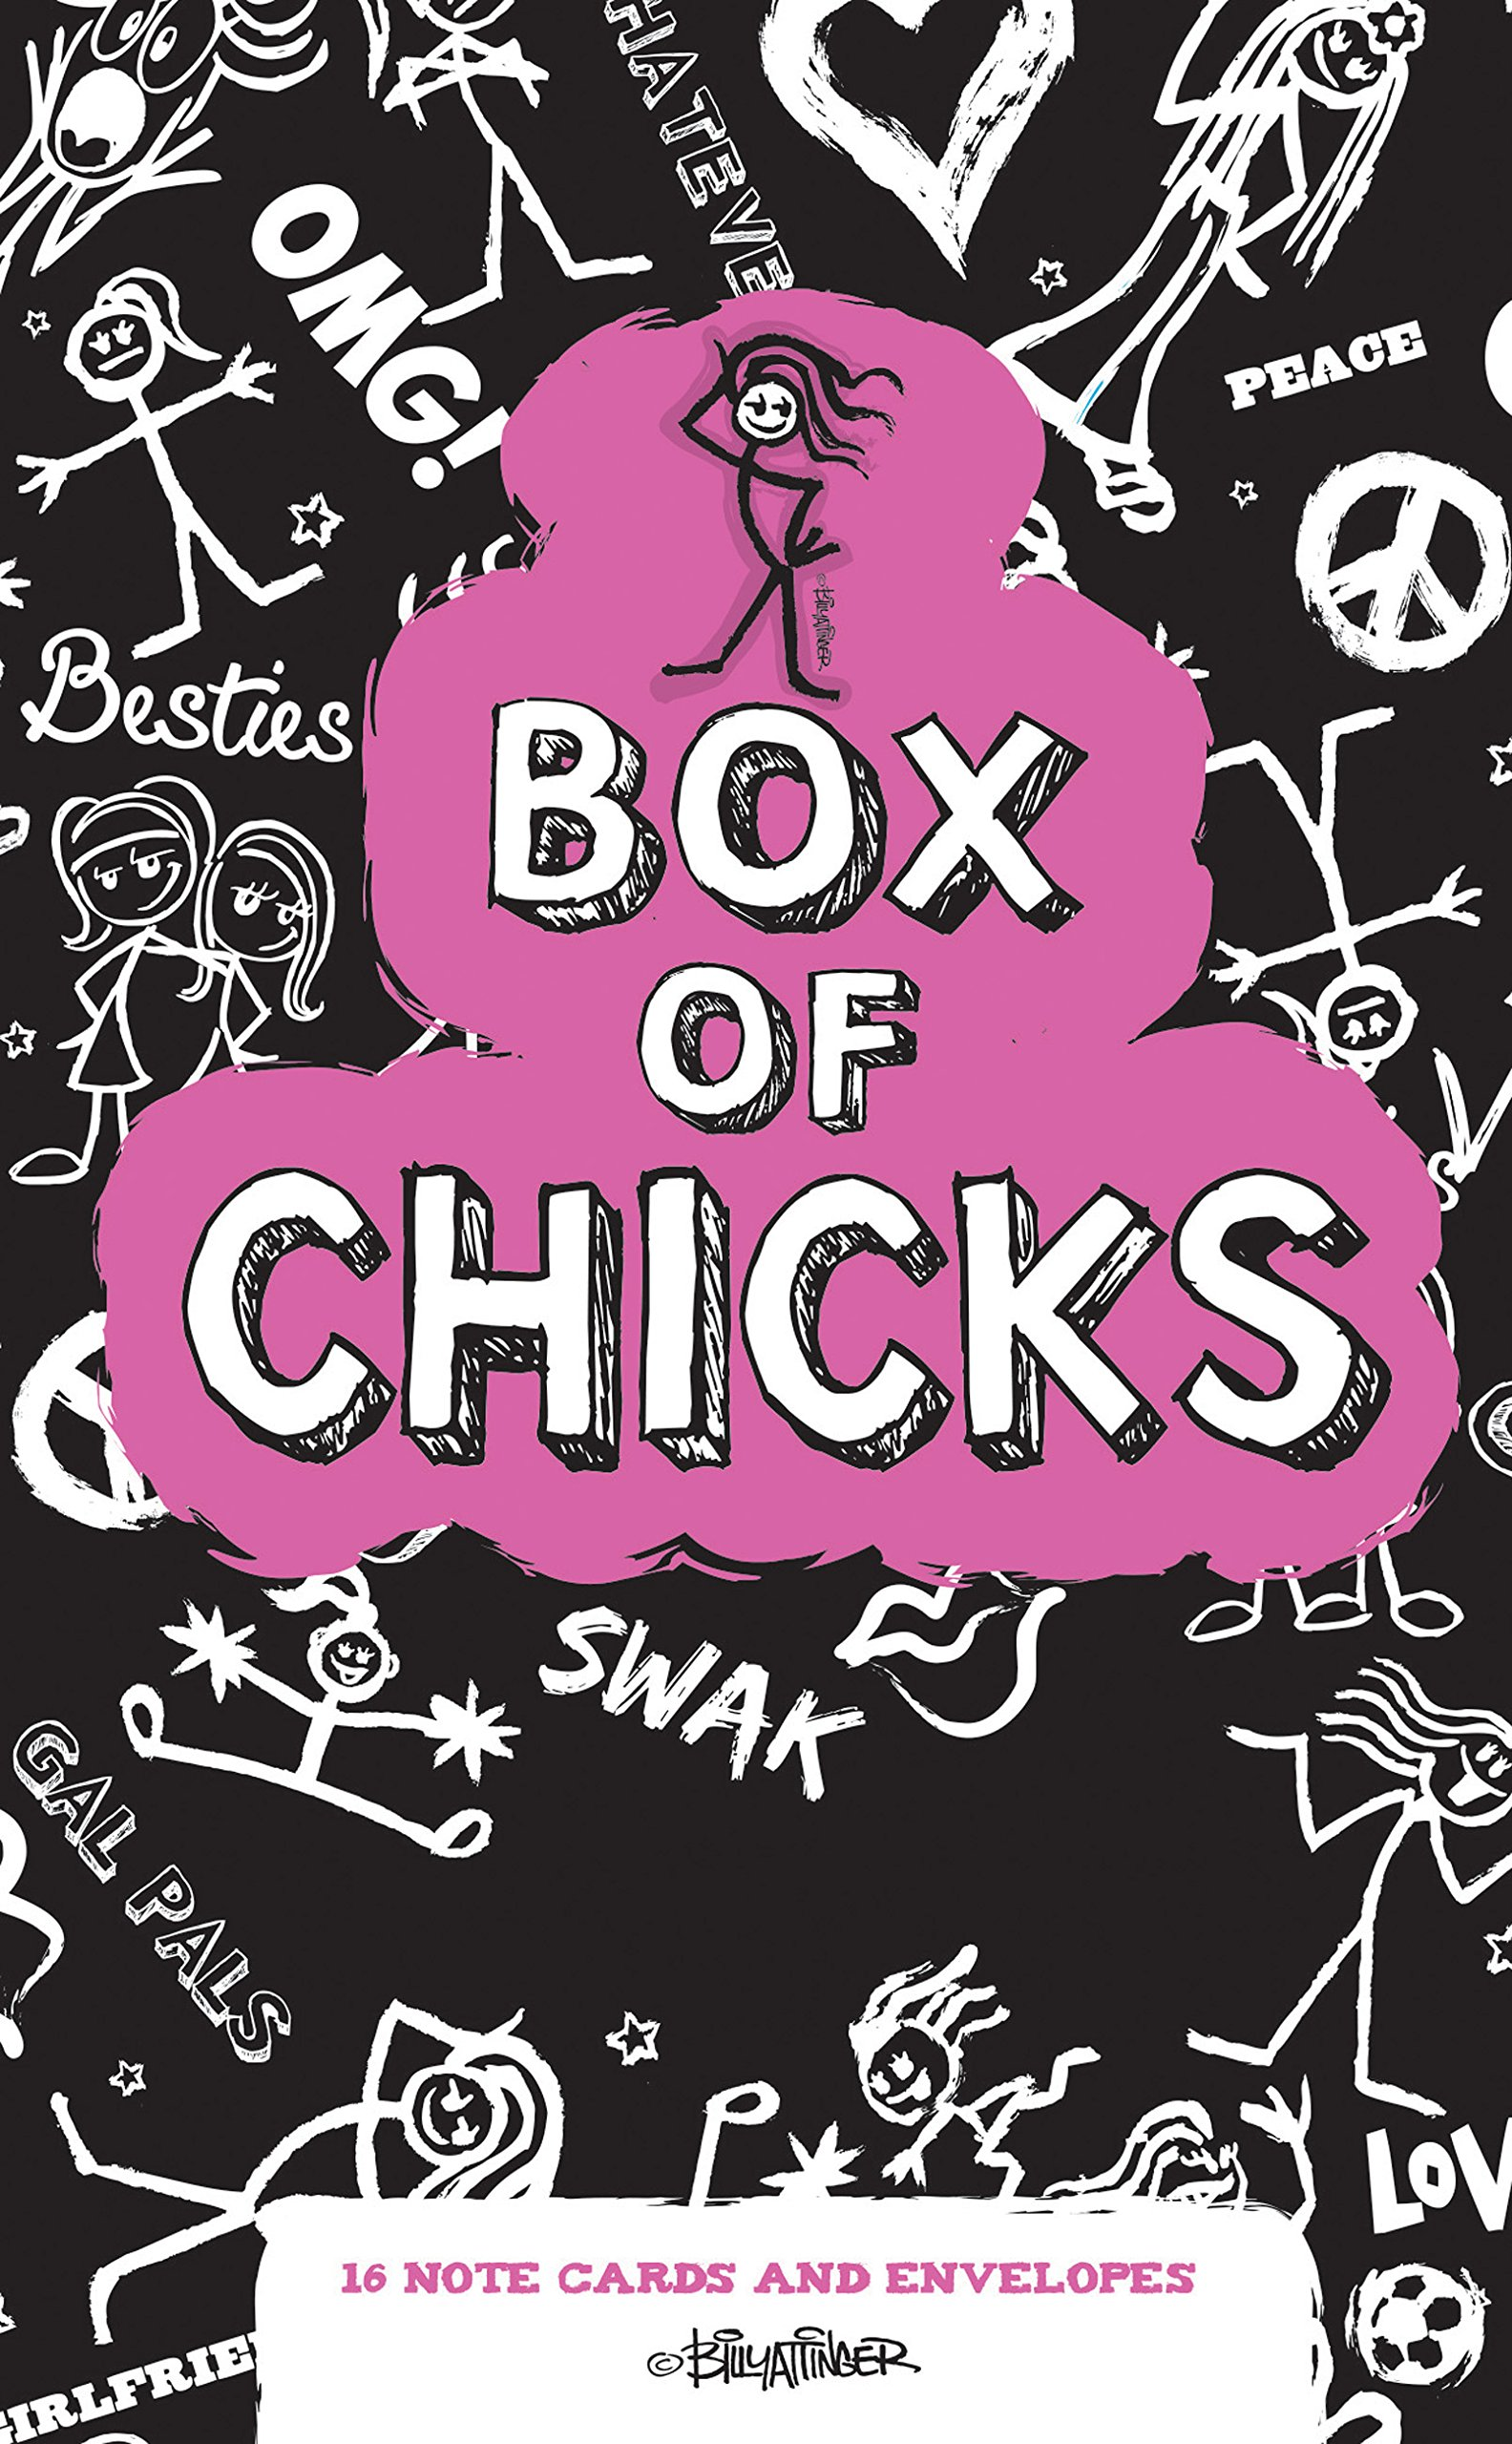 Download Box of Chicks - Cards for Girly Occasions: 16 Note Cards and Envelopes ebook